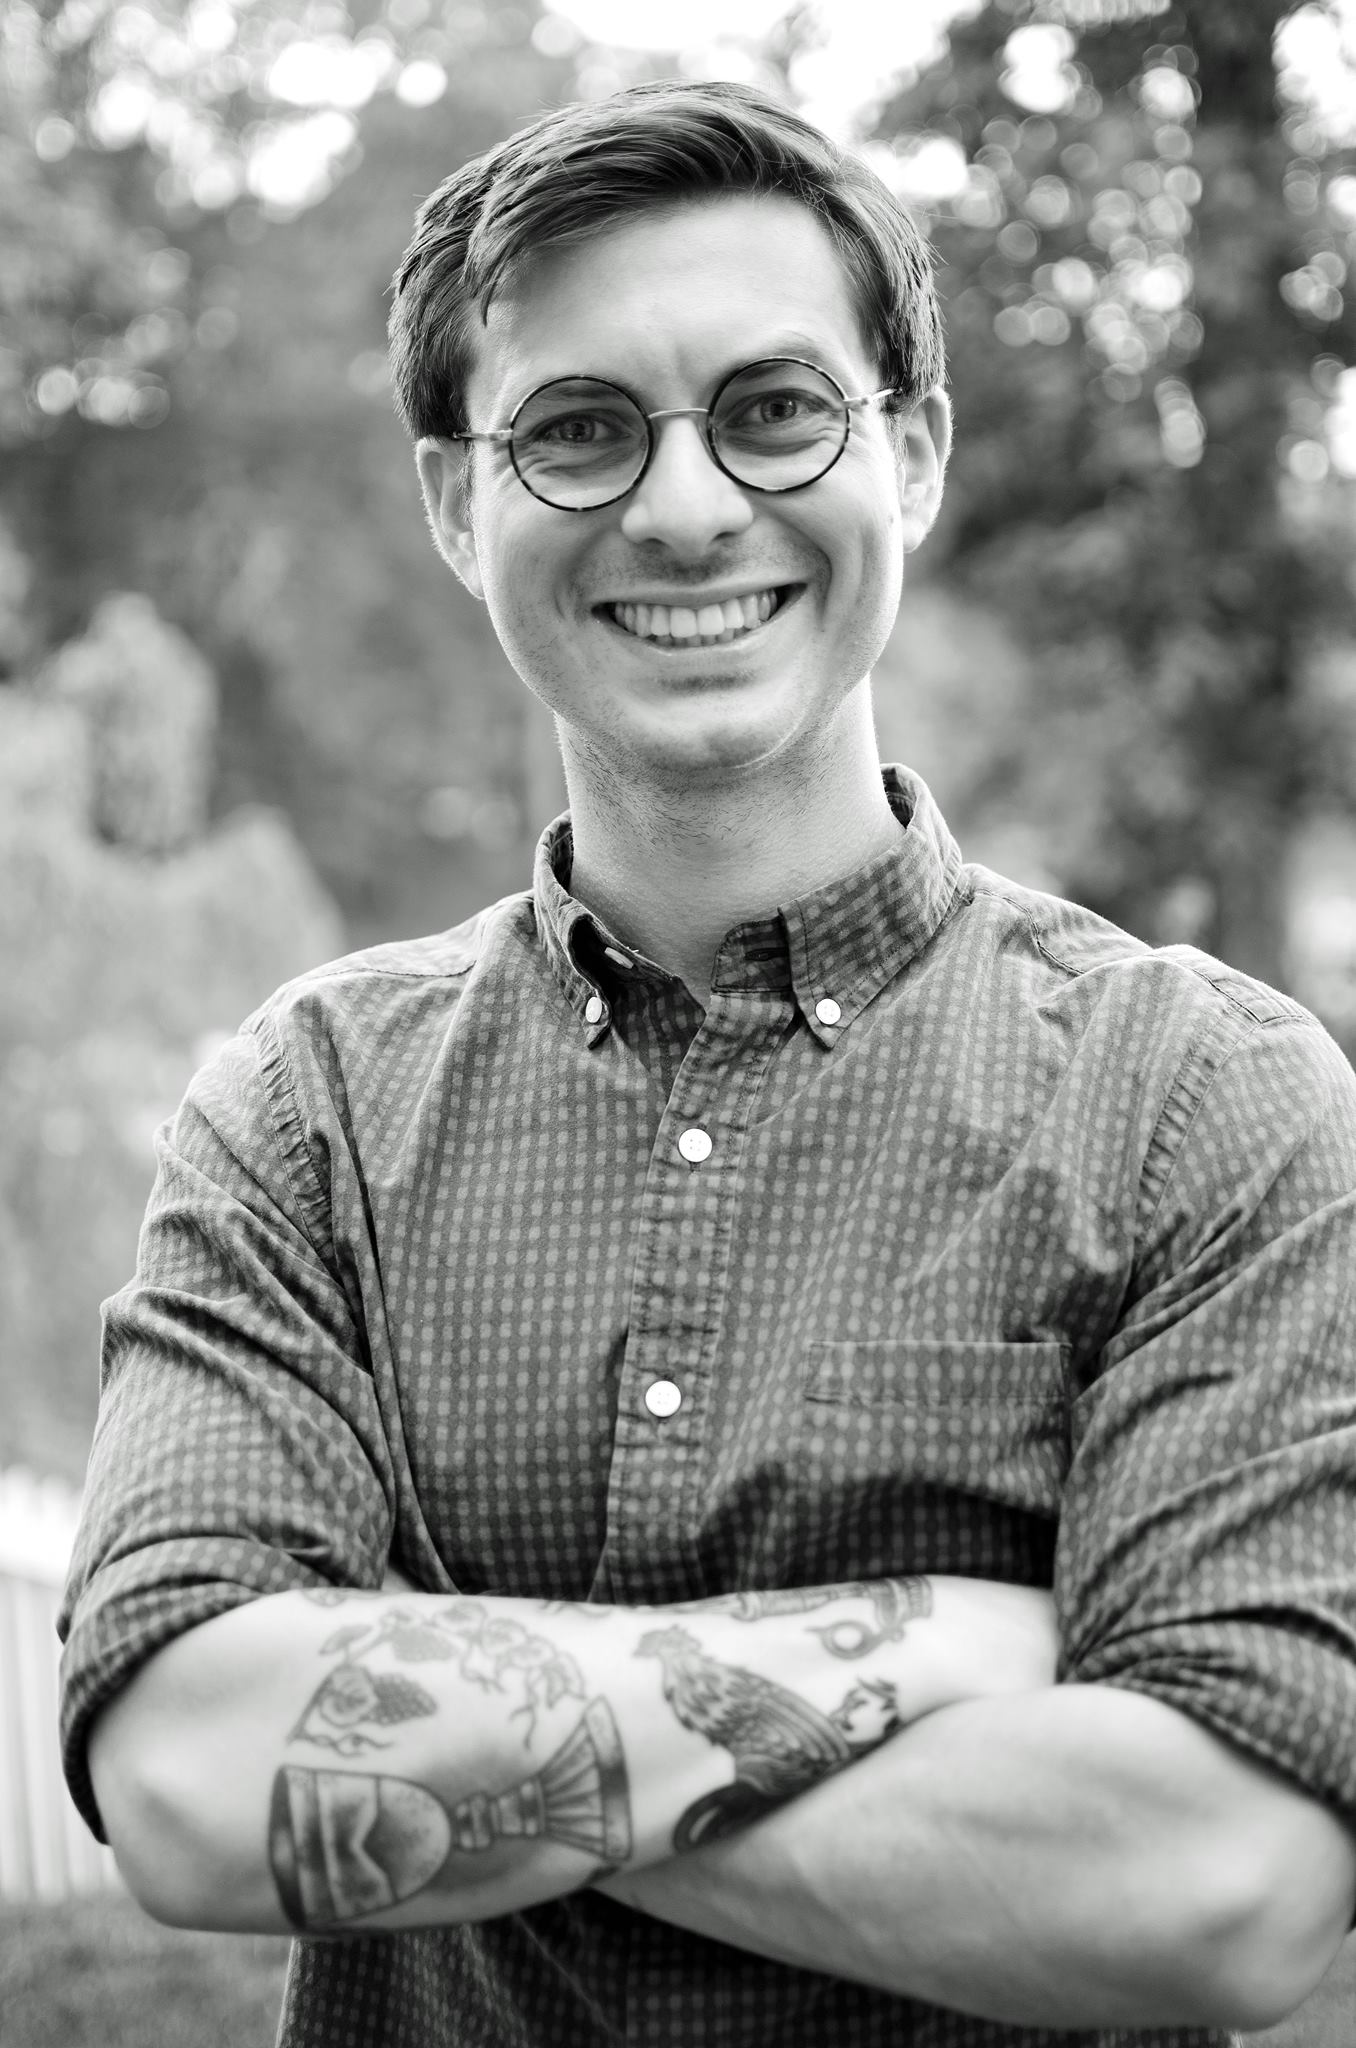 Andy Morgan - Andy Morgan has served as pastor to UKirk at the University of Tennessee, Knoxville since 2015. Andy is married to Sarah Morgan, Associate Pastor at Second Presbyterian Church in Knoxville, and has a son named Robert. Andy enjoys video games, memes, and sending Bejeweled requests to YOU on Facebook. Andy hopes that, through a blend of humor and serious study, we will come to a deeper appreciation of the content and call heard and experienced within the story of Esther.